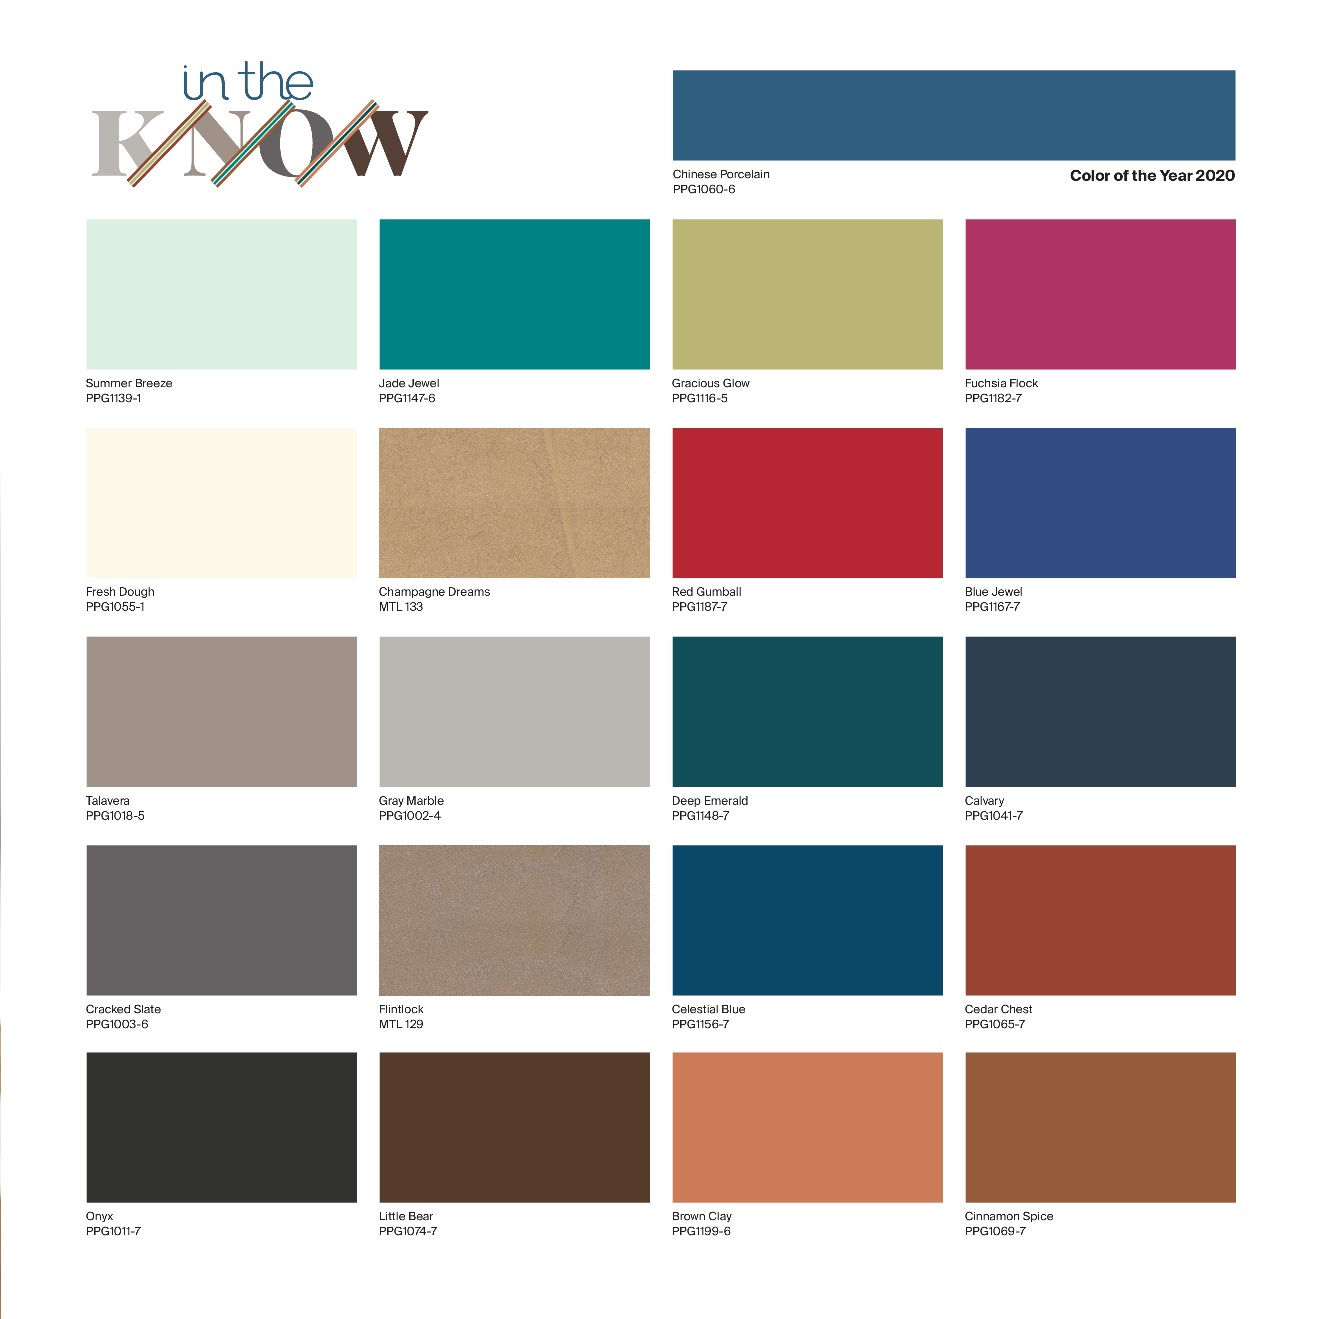 PPG color of the year - global color palette 2020 In the Know